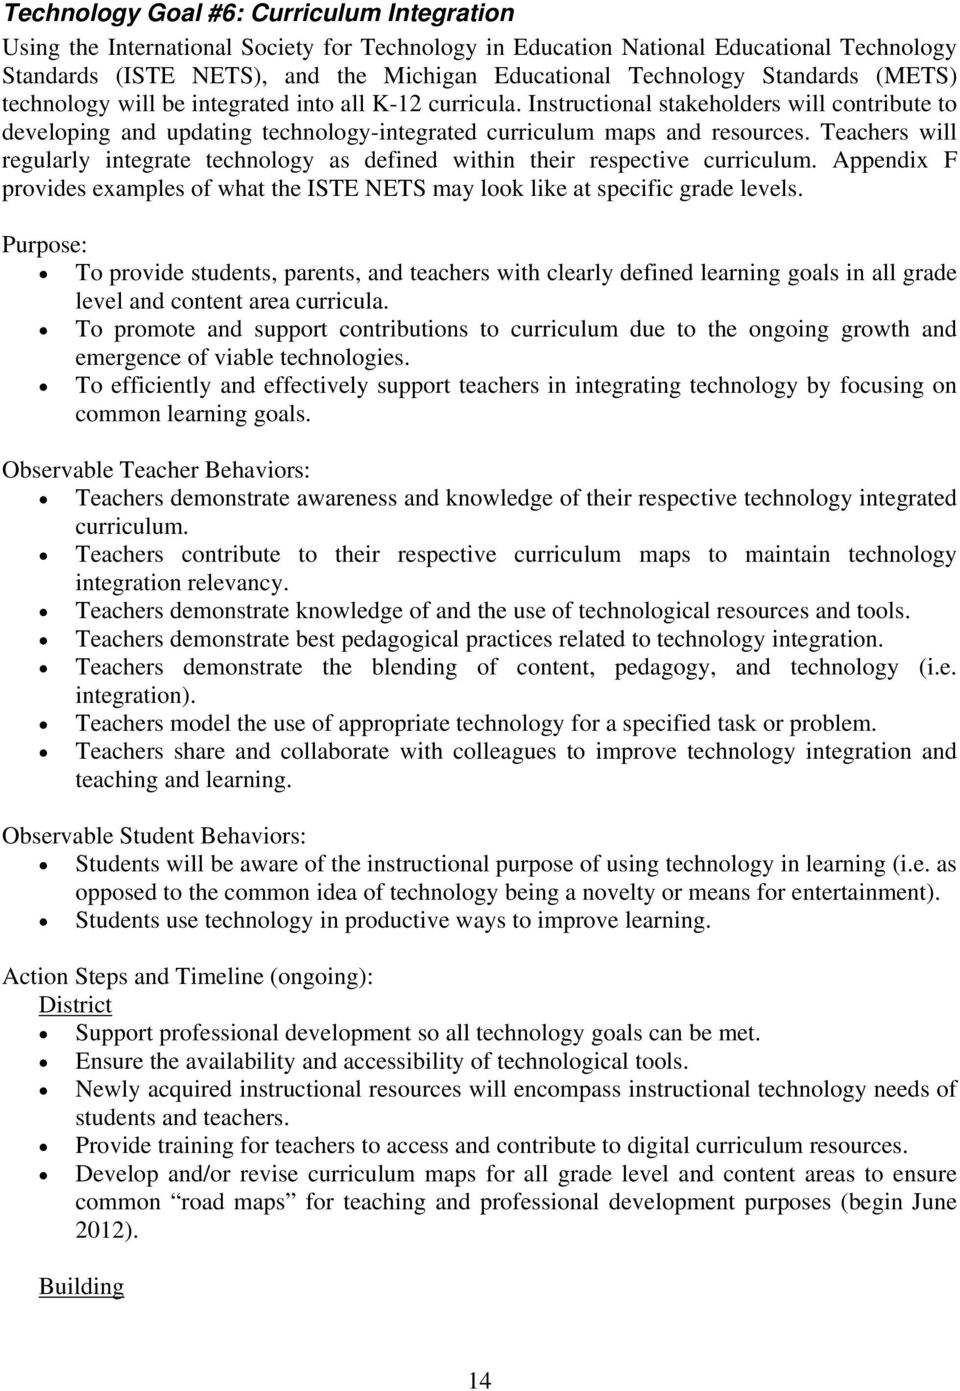 Teachers will regularly integrate technology as defined within their respective curriculum. Appendix F provides examples of what the ISTE NETS may look like at specific grade levels.